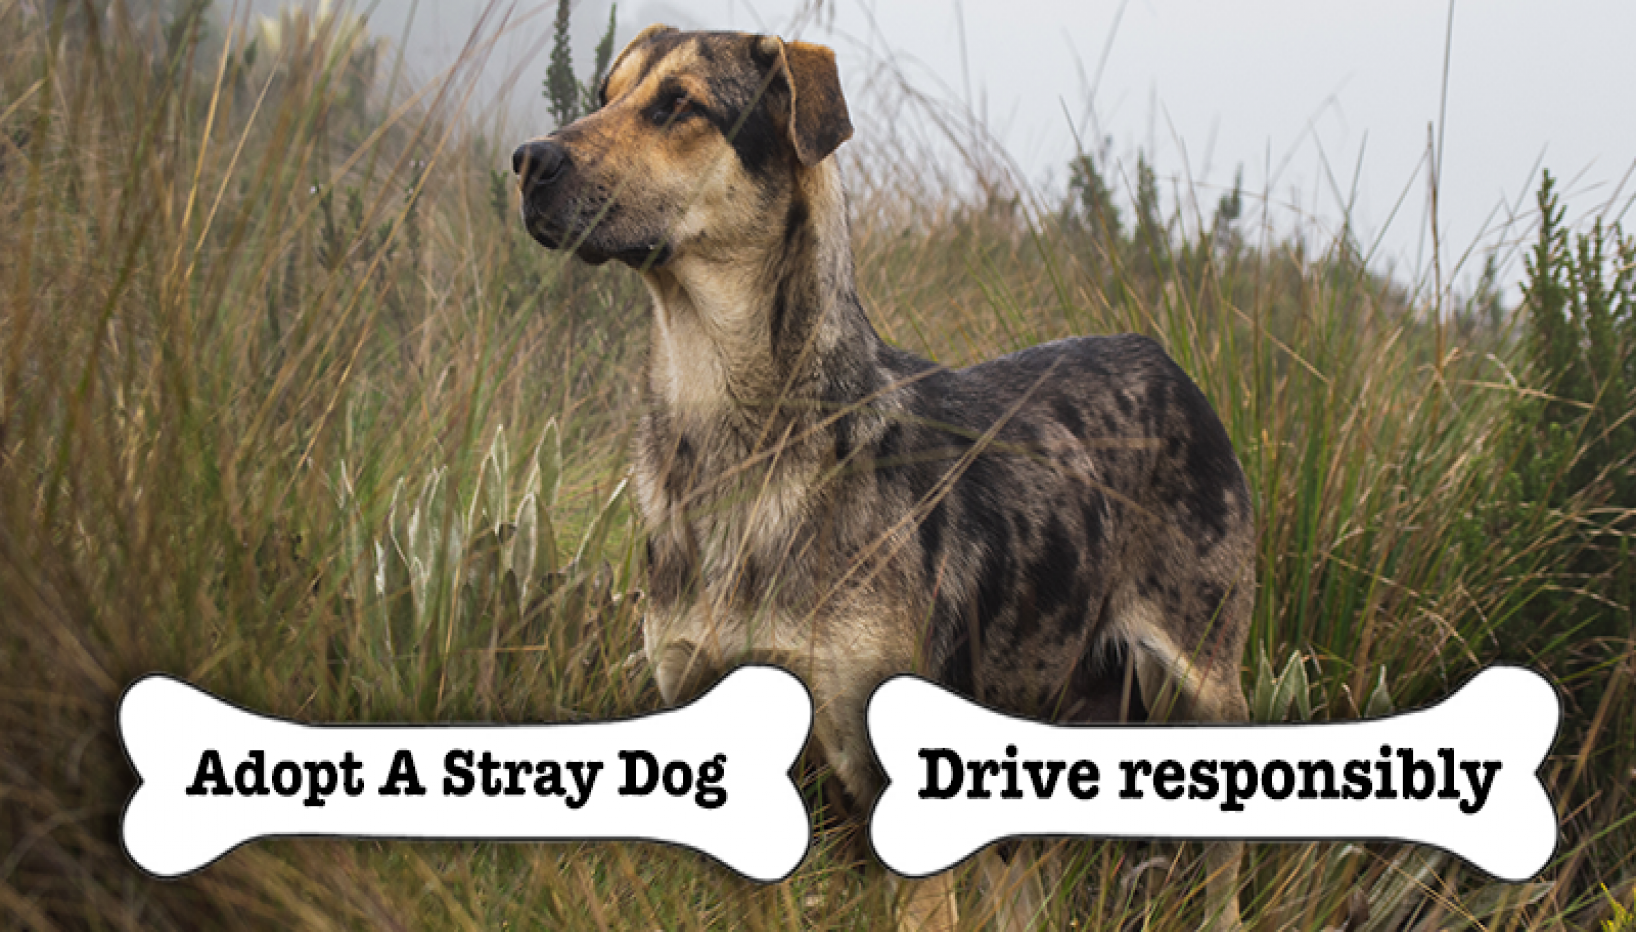 We Lost 'Khaire' But We Can Save The Rest; Here Are 5 Simple Deeds To Ensure Safety Of Stray Dogs